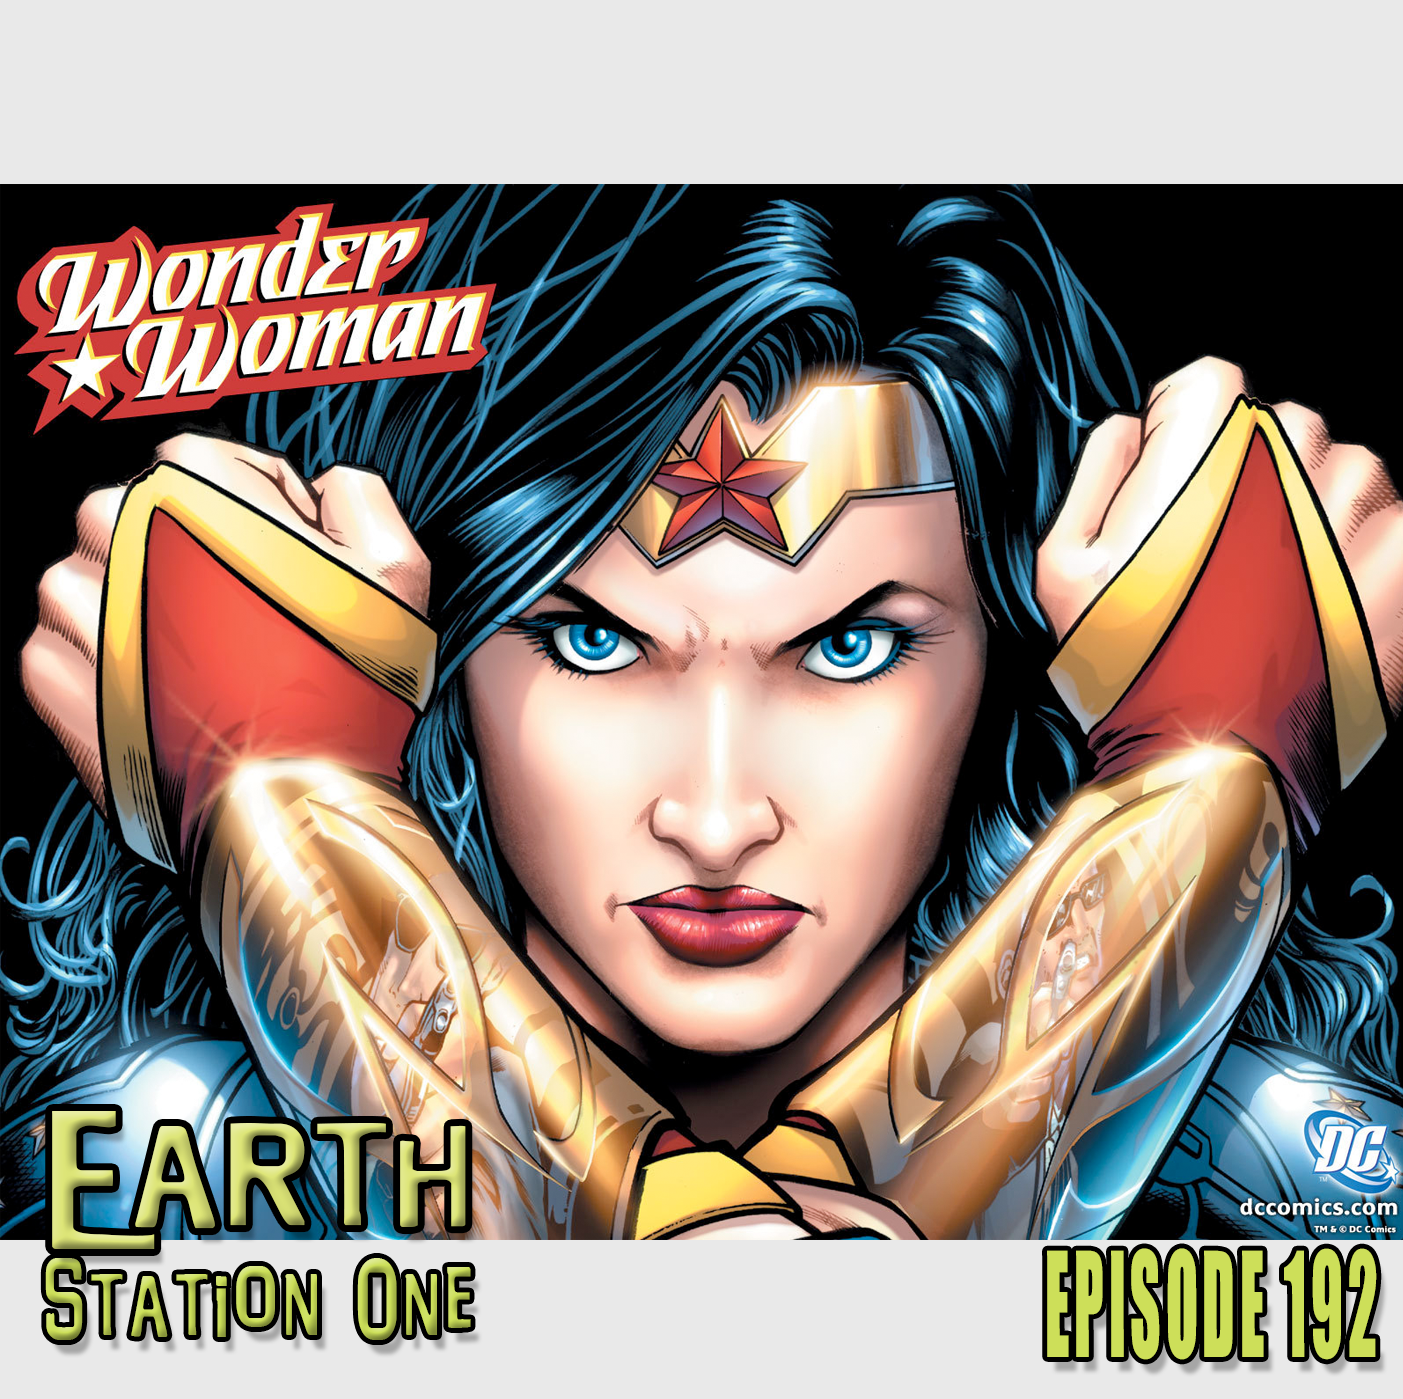 Earth Station One Ep 192